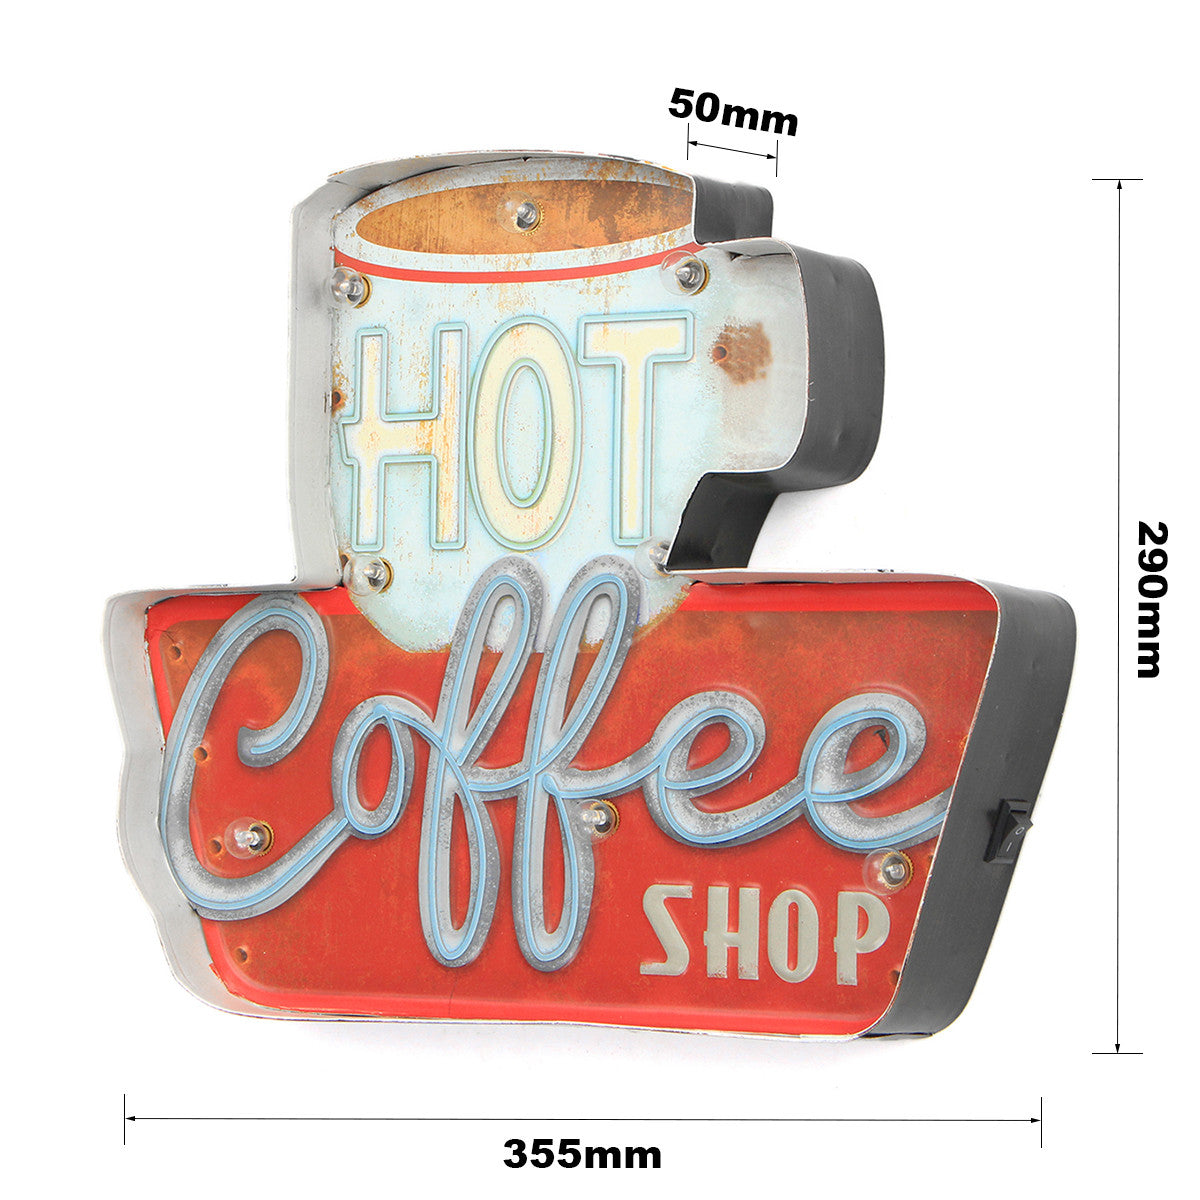 Hot Coffee Shop LED Metal Neon Light Vintage Sign - KindBrew Coffee